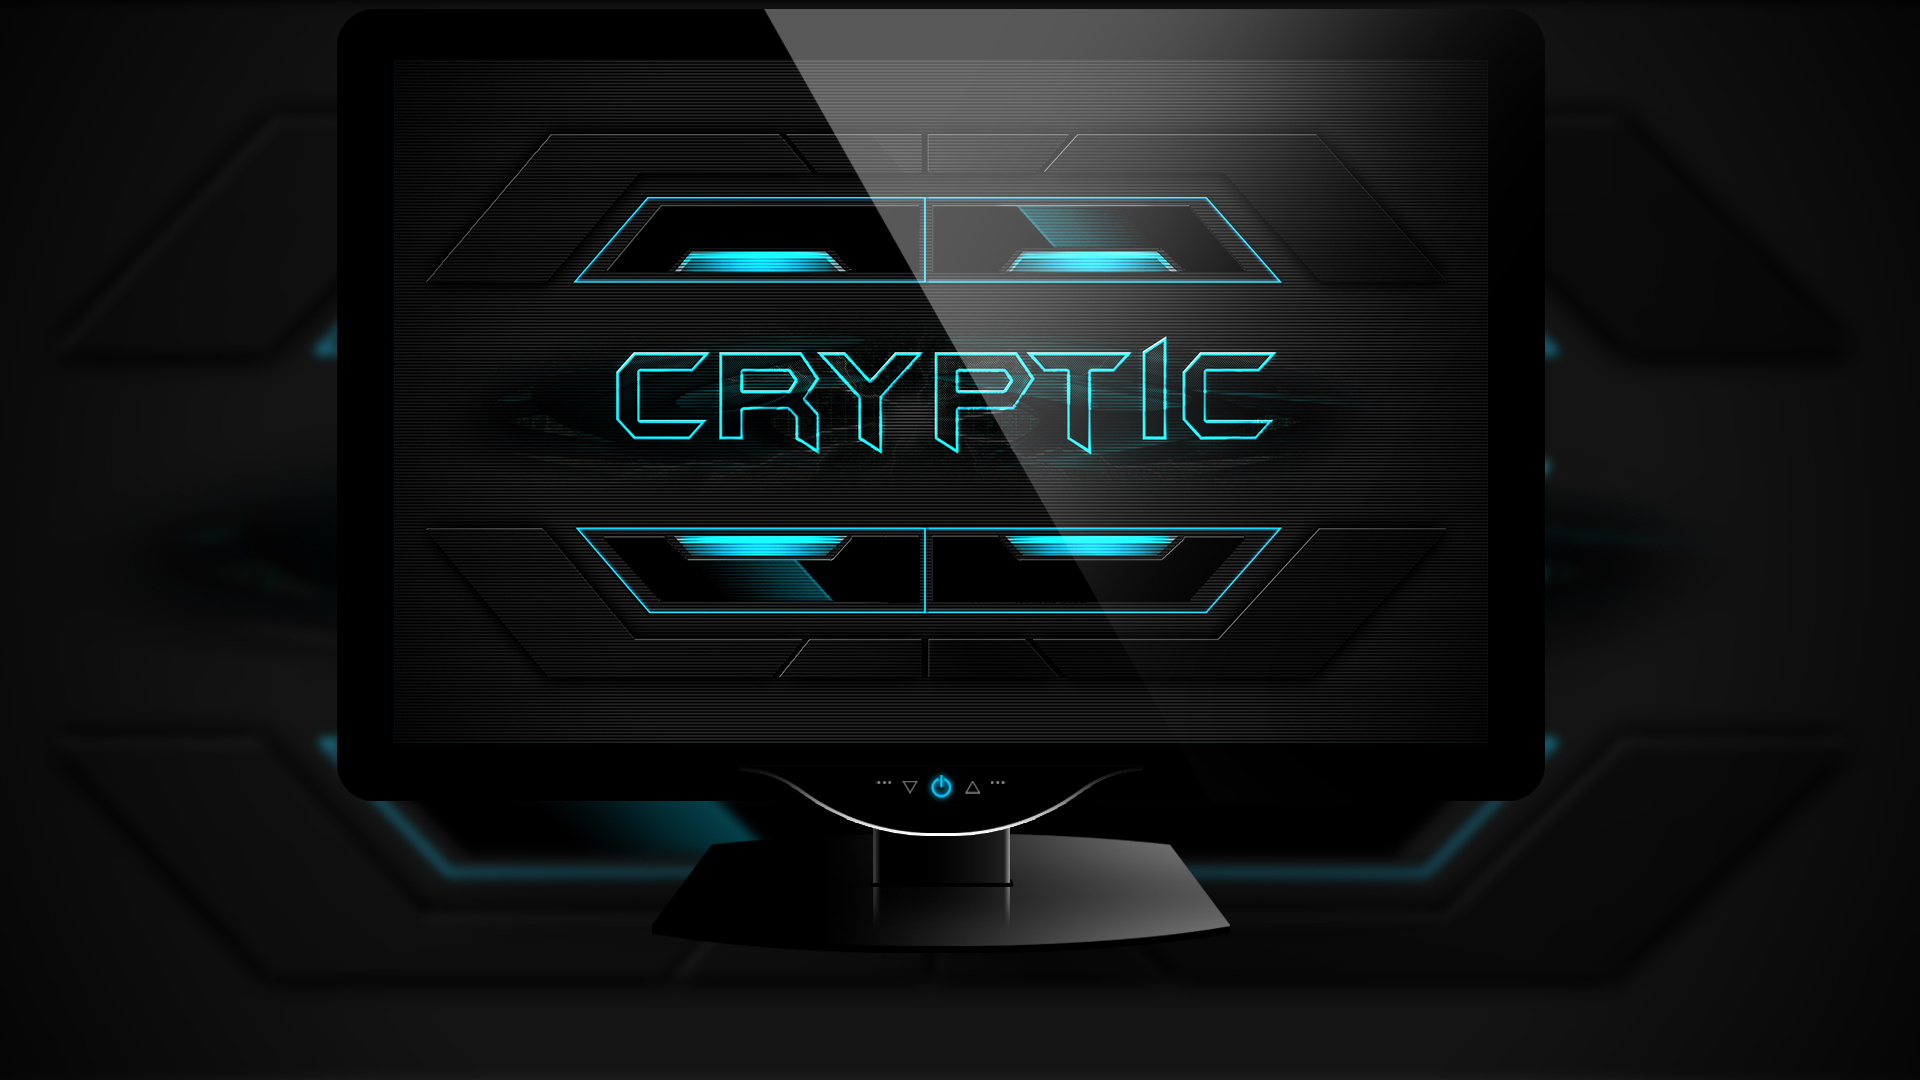 cryptic wallpaper-#10